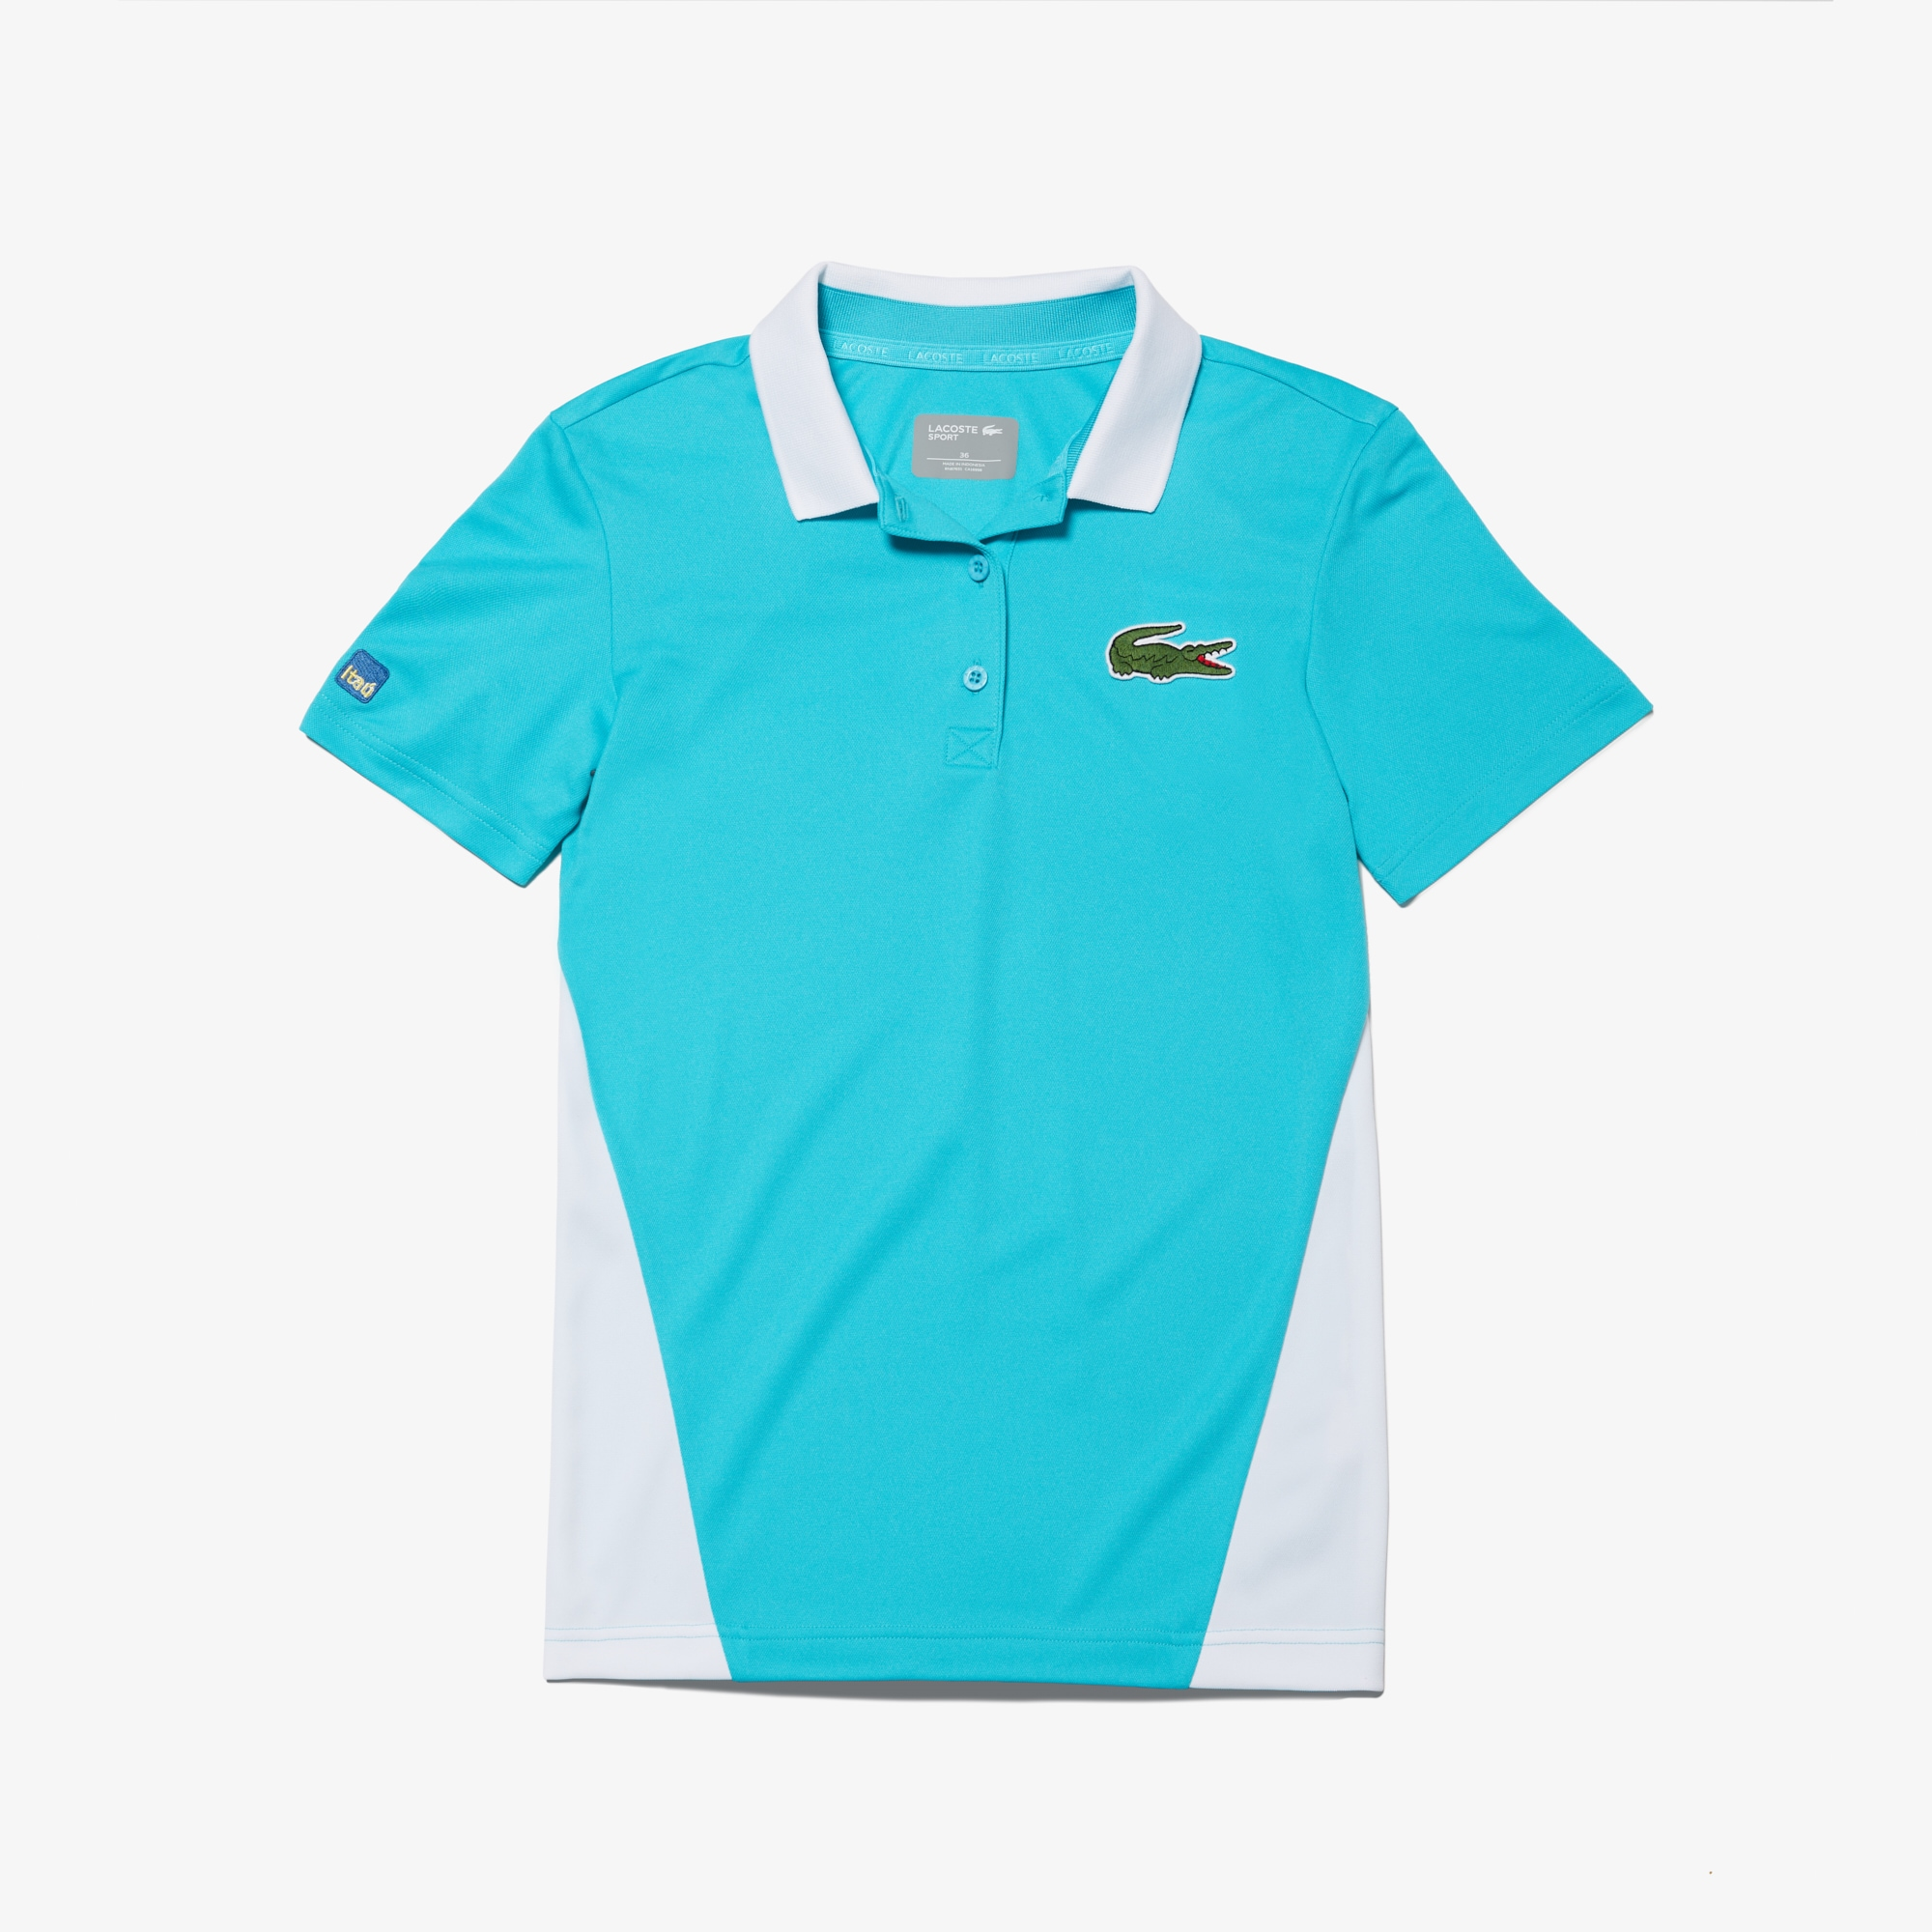 Women's SPORT Miami Open Edition Piqué Polo